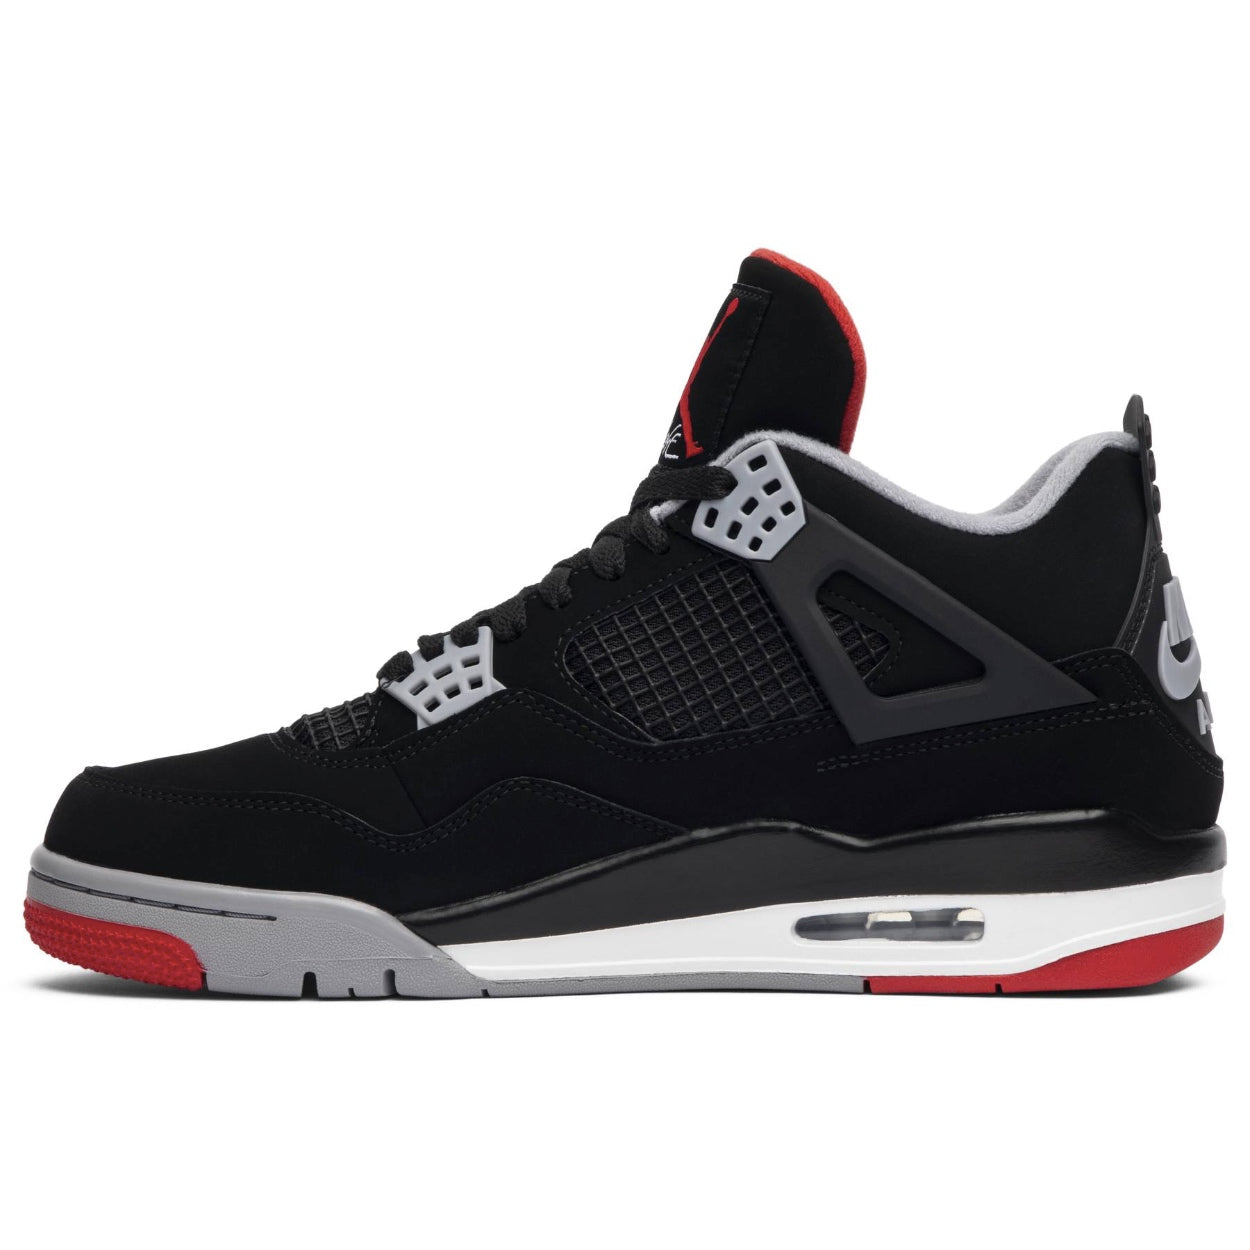 Air Jordan 4 Retro OG 'Bred' 2019